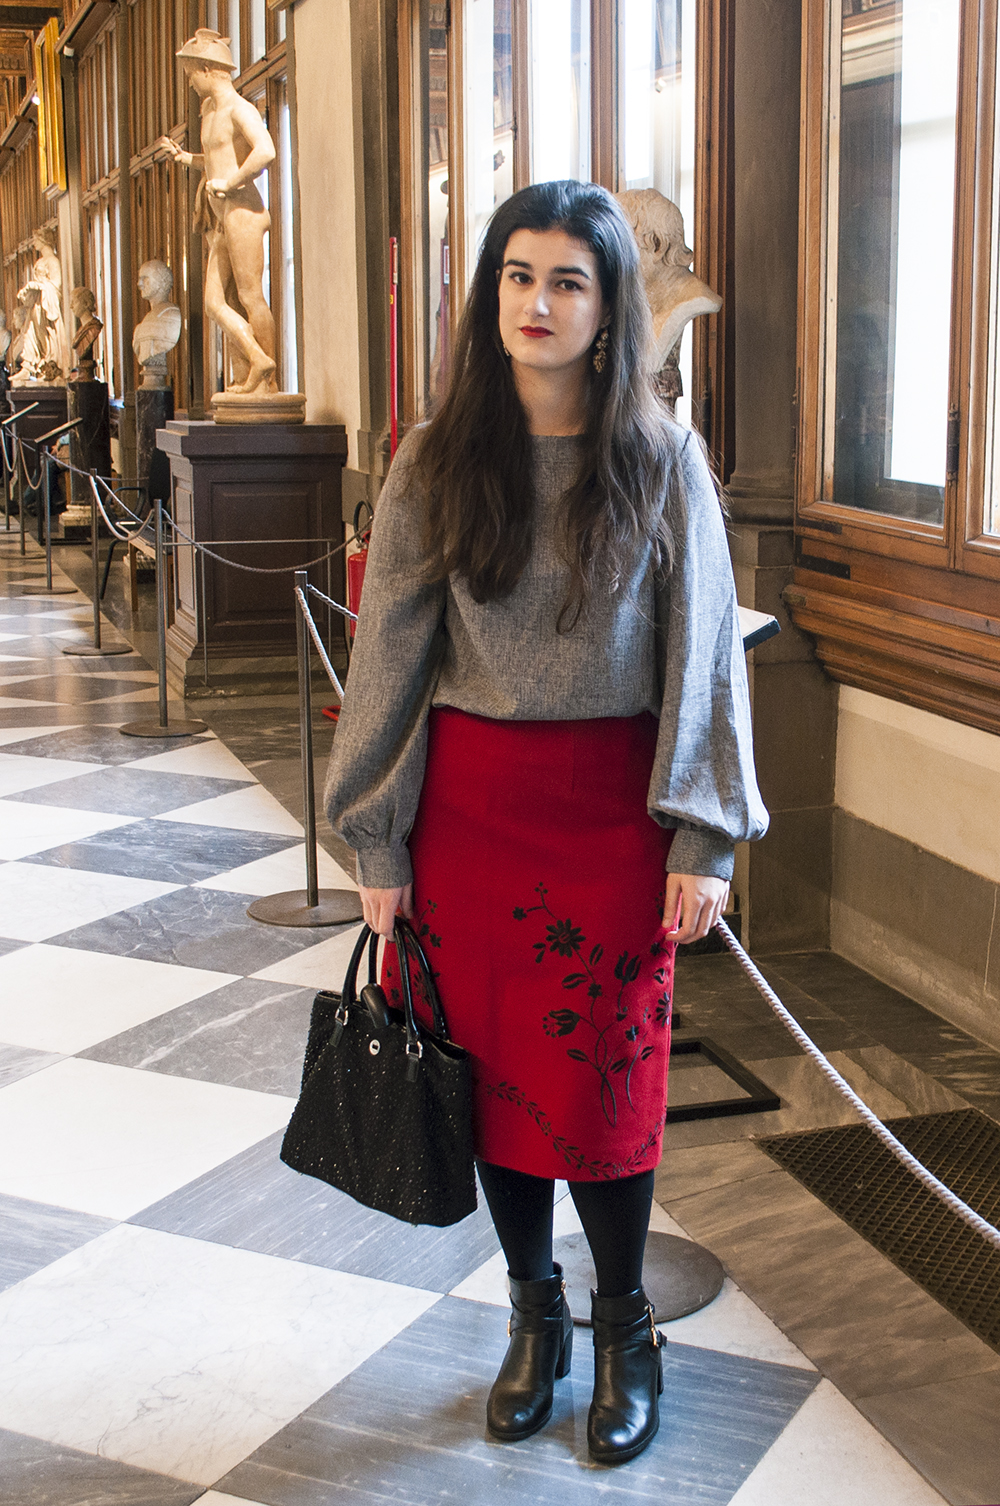 somethingfashion spain firenze italy valencia bloggers outfit galleriauffizi shein blouse wool skirt_0157